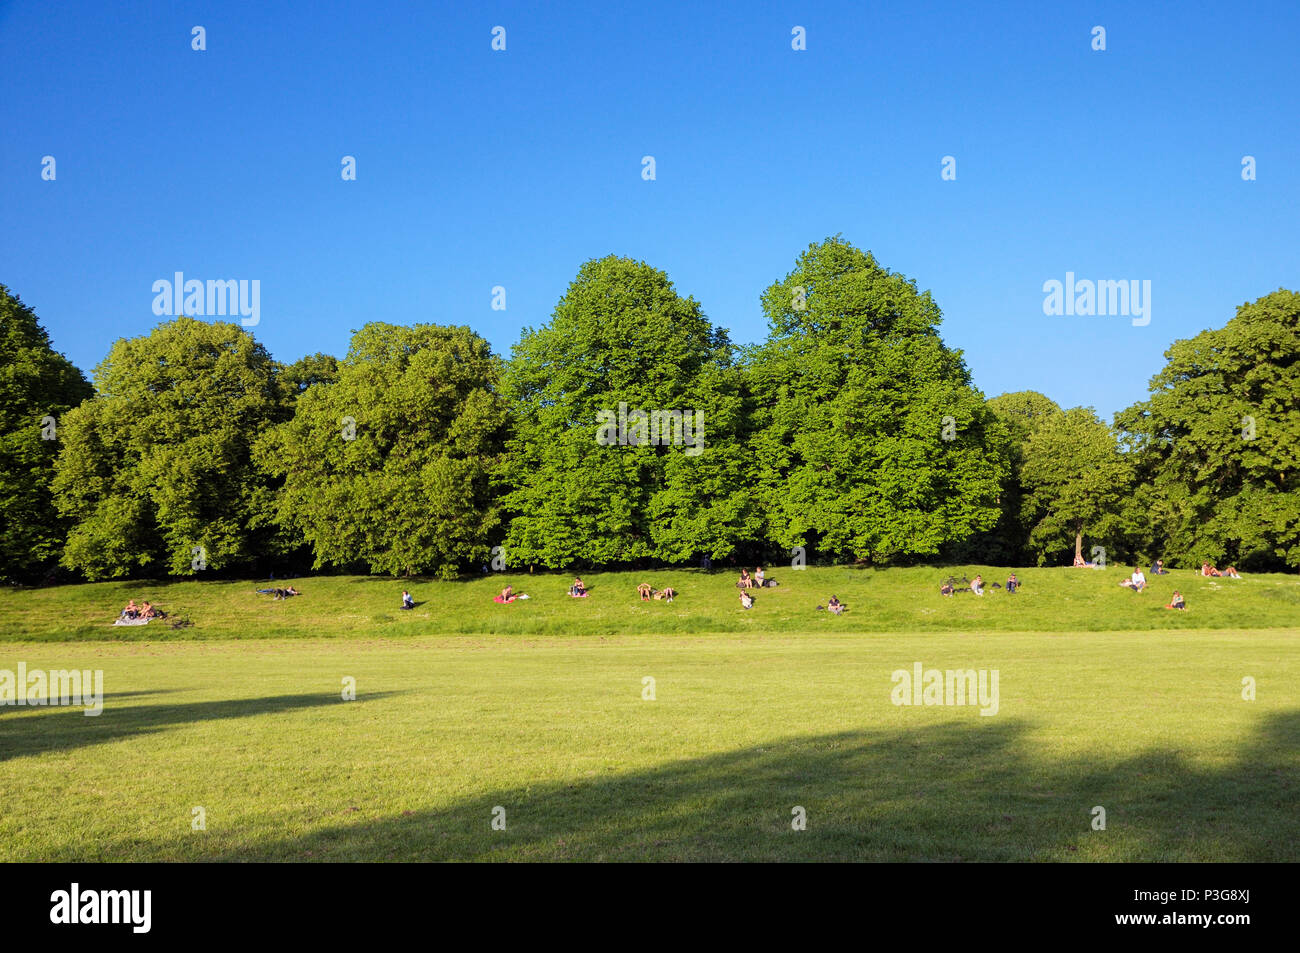 People relaxing in the sun on the grassy banks of Kensington Gardens, Royal Borough of Kensington and Chelsea, London, England, UK - Stock Image